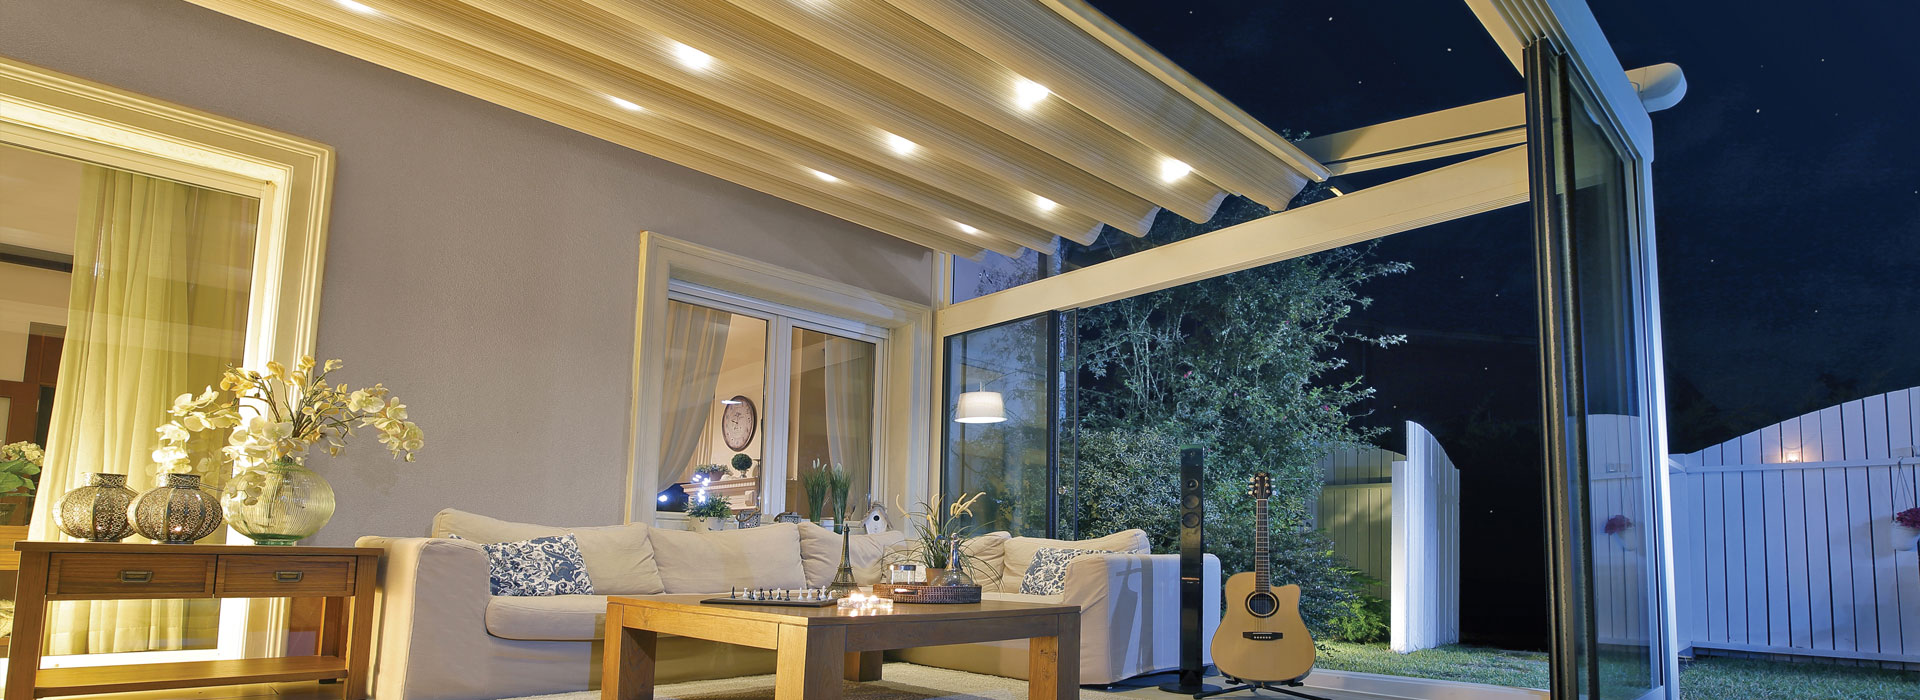 residential pergolas for automatic weather protection